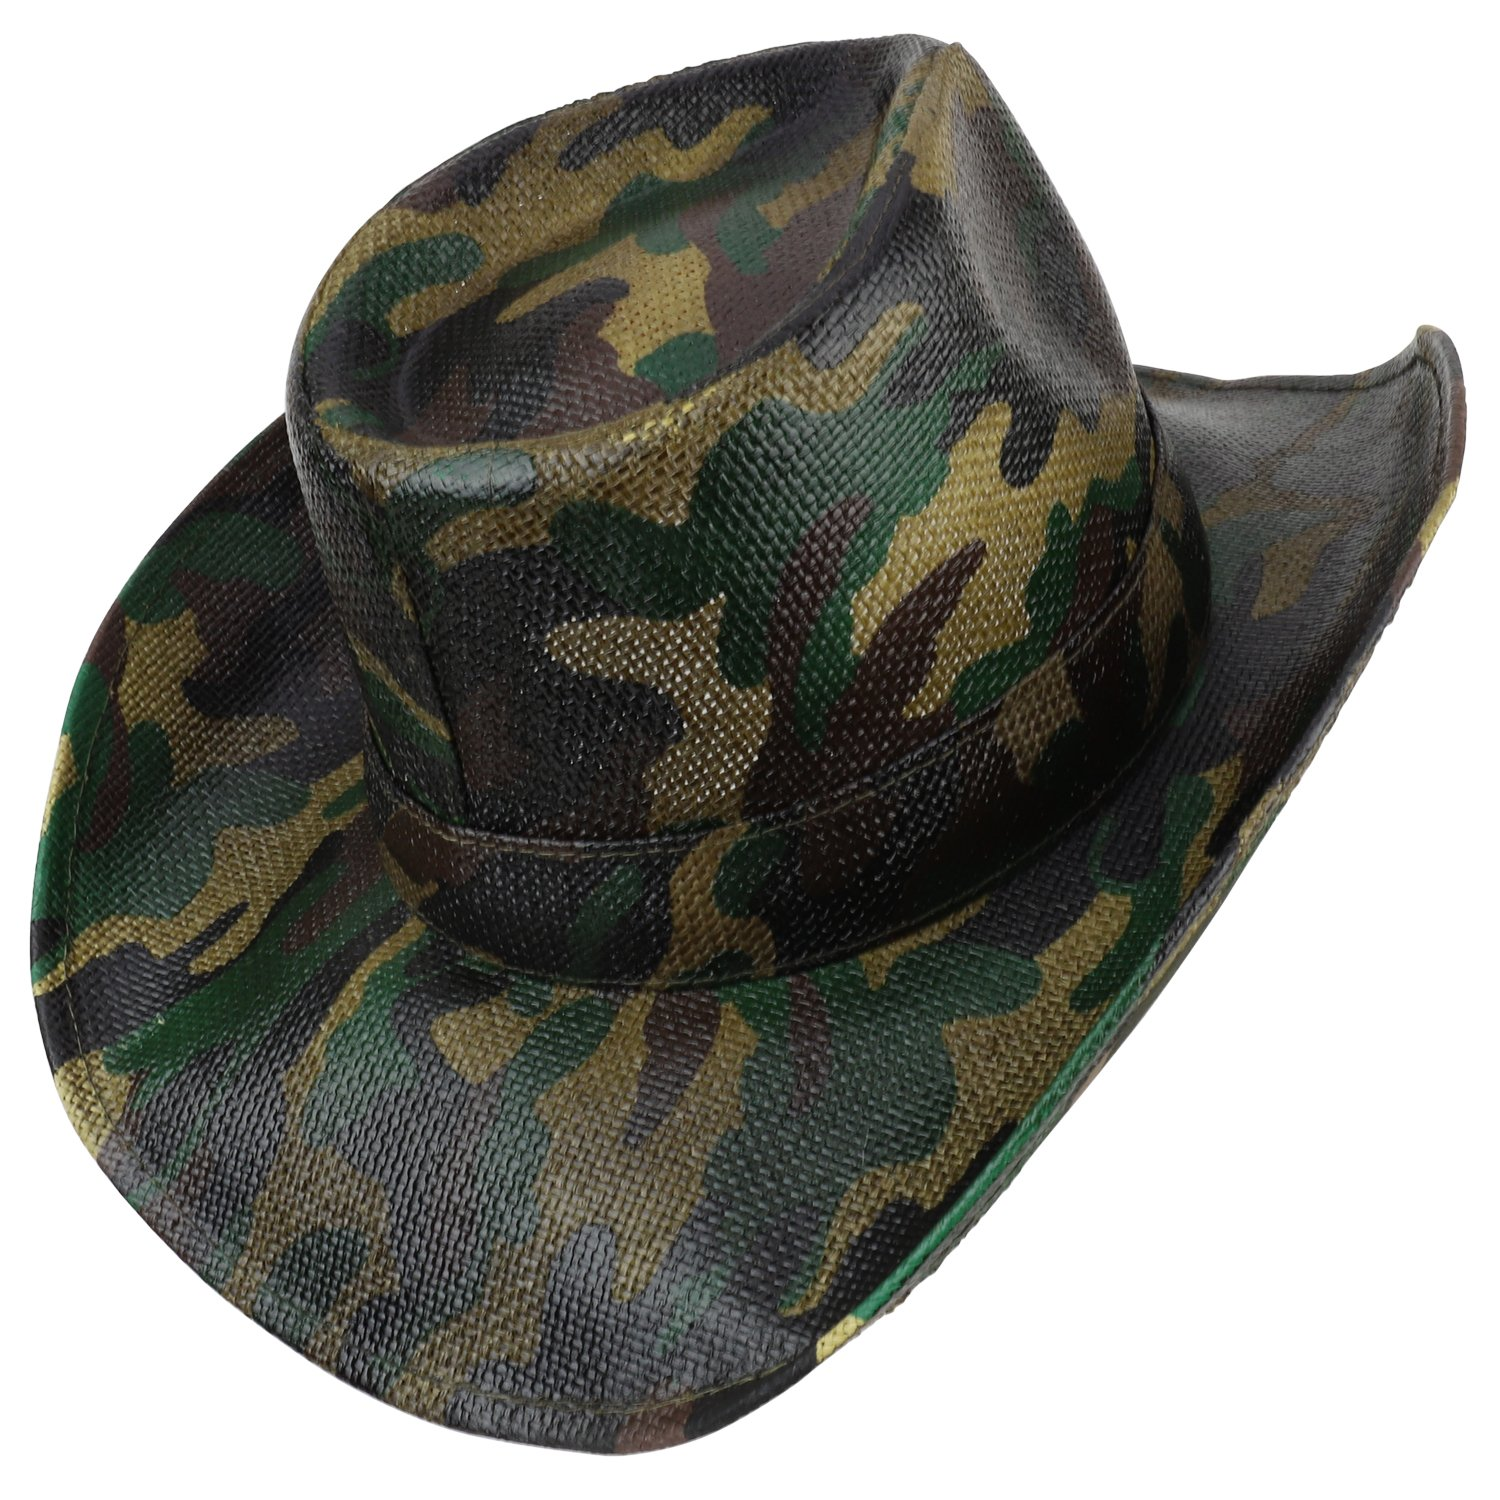 a090ec3ae82 Armycrew Woodland Camouflage Print Western Paper Straw Cowboy Hat - CAMO at  Amazon Men s Clothing store